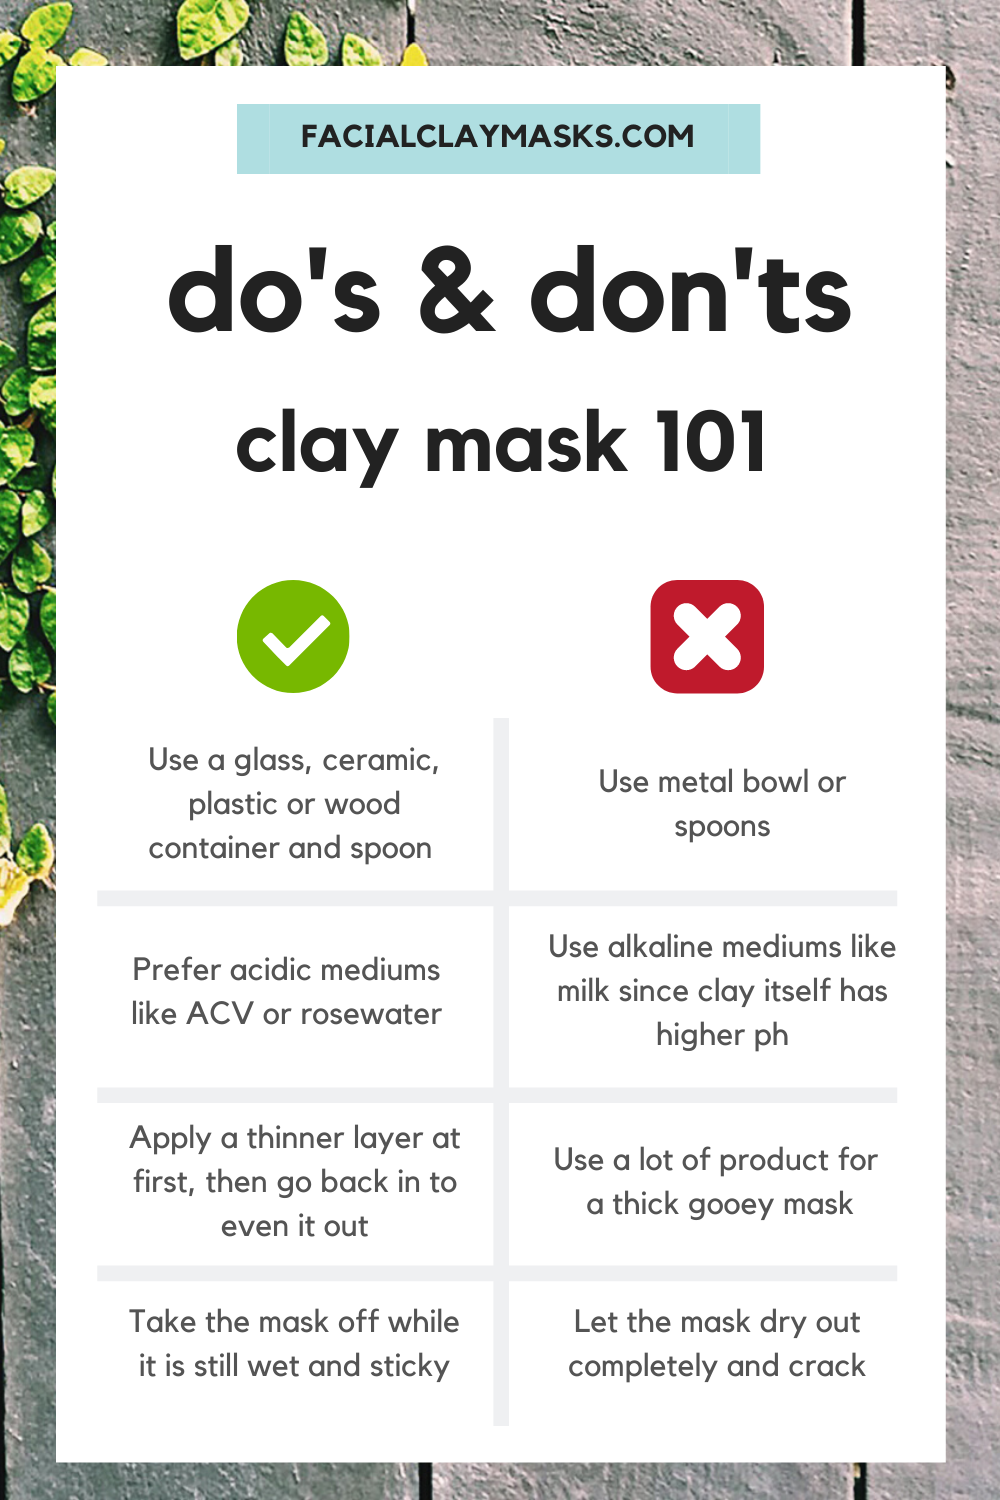 How to Apply Face Mask 3